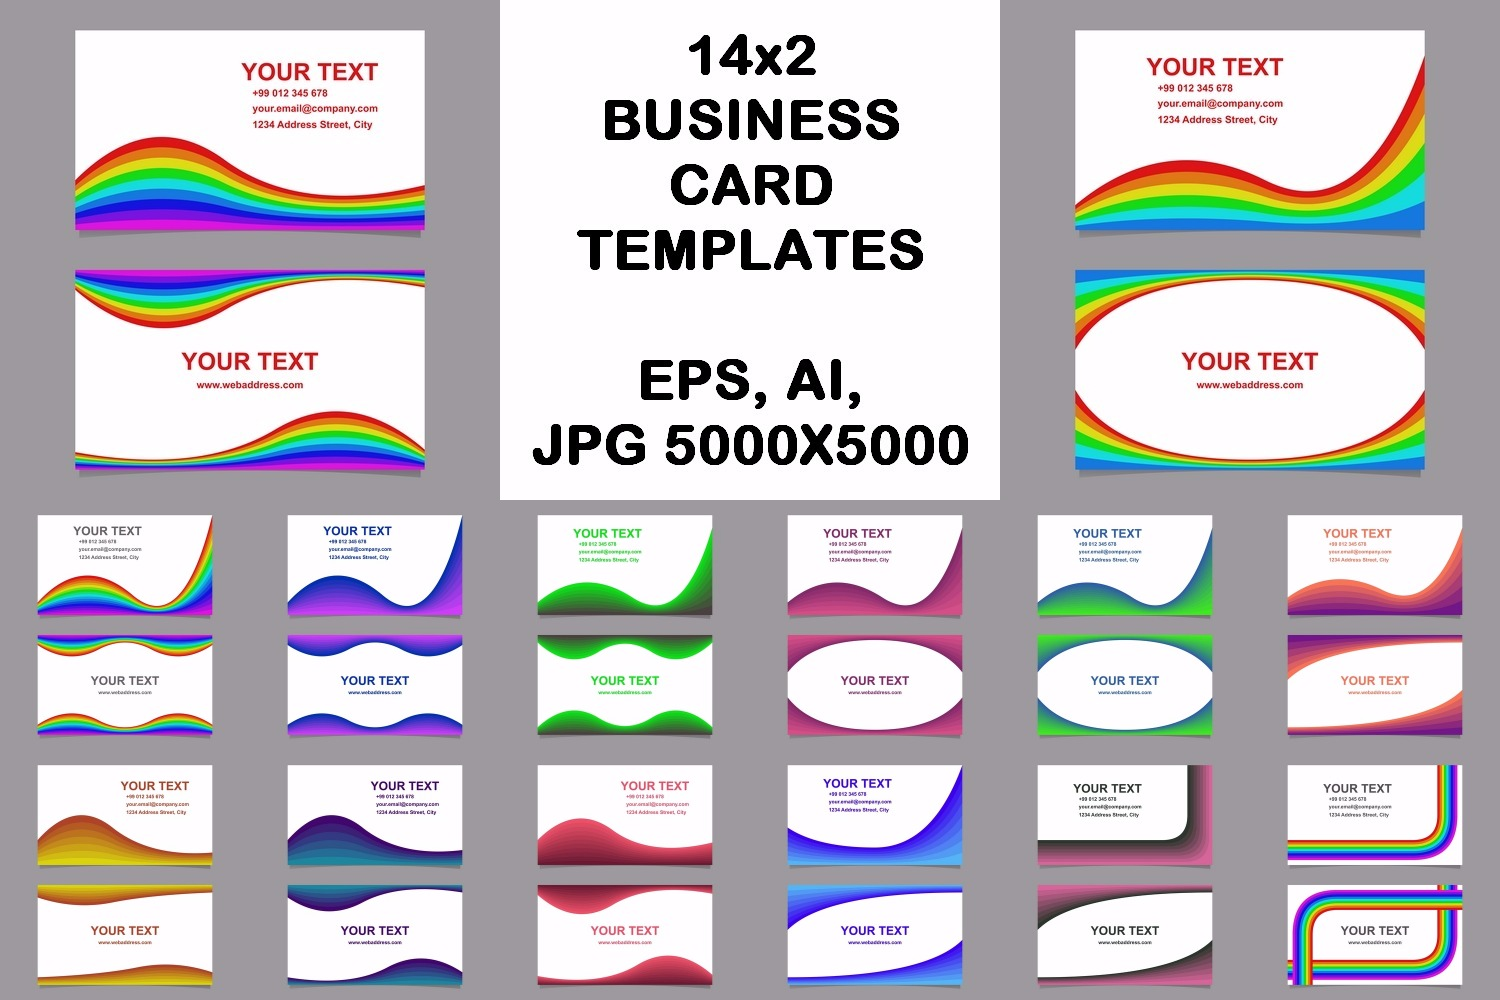 14x2 curved design business card templates (EPS, AI, JPG 5000x5000) example image 1